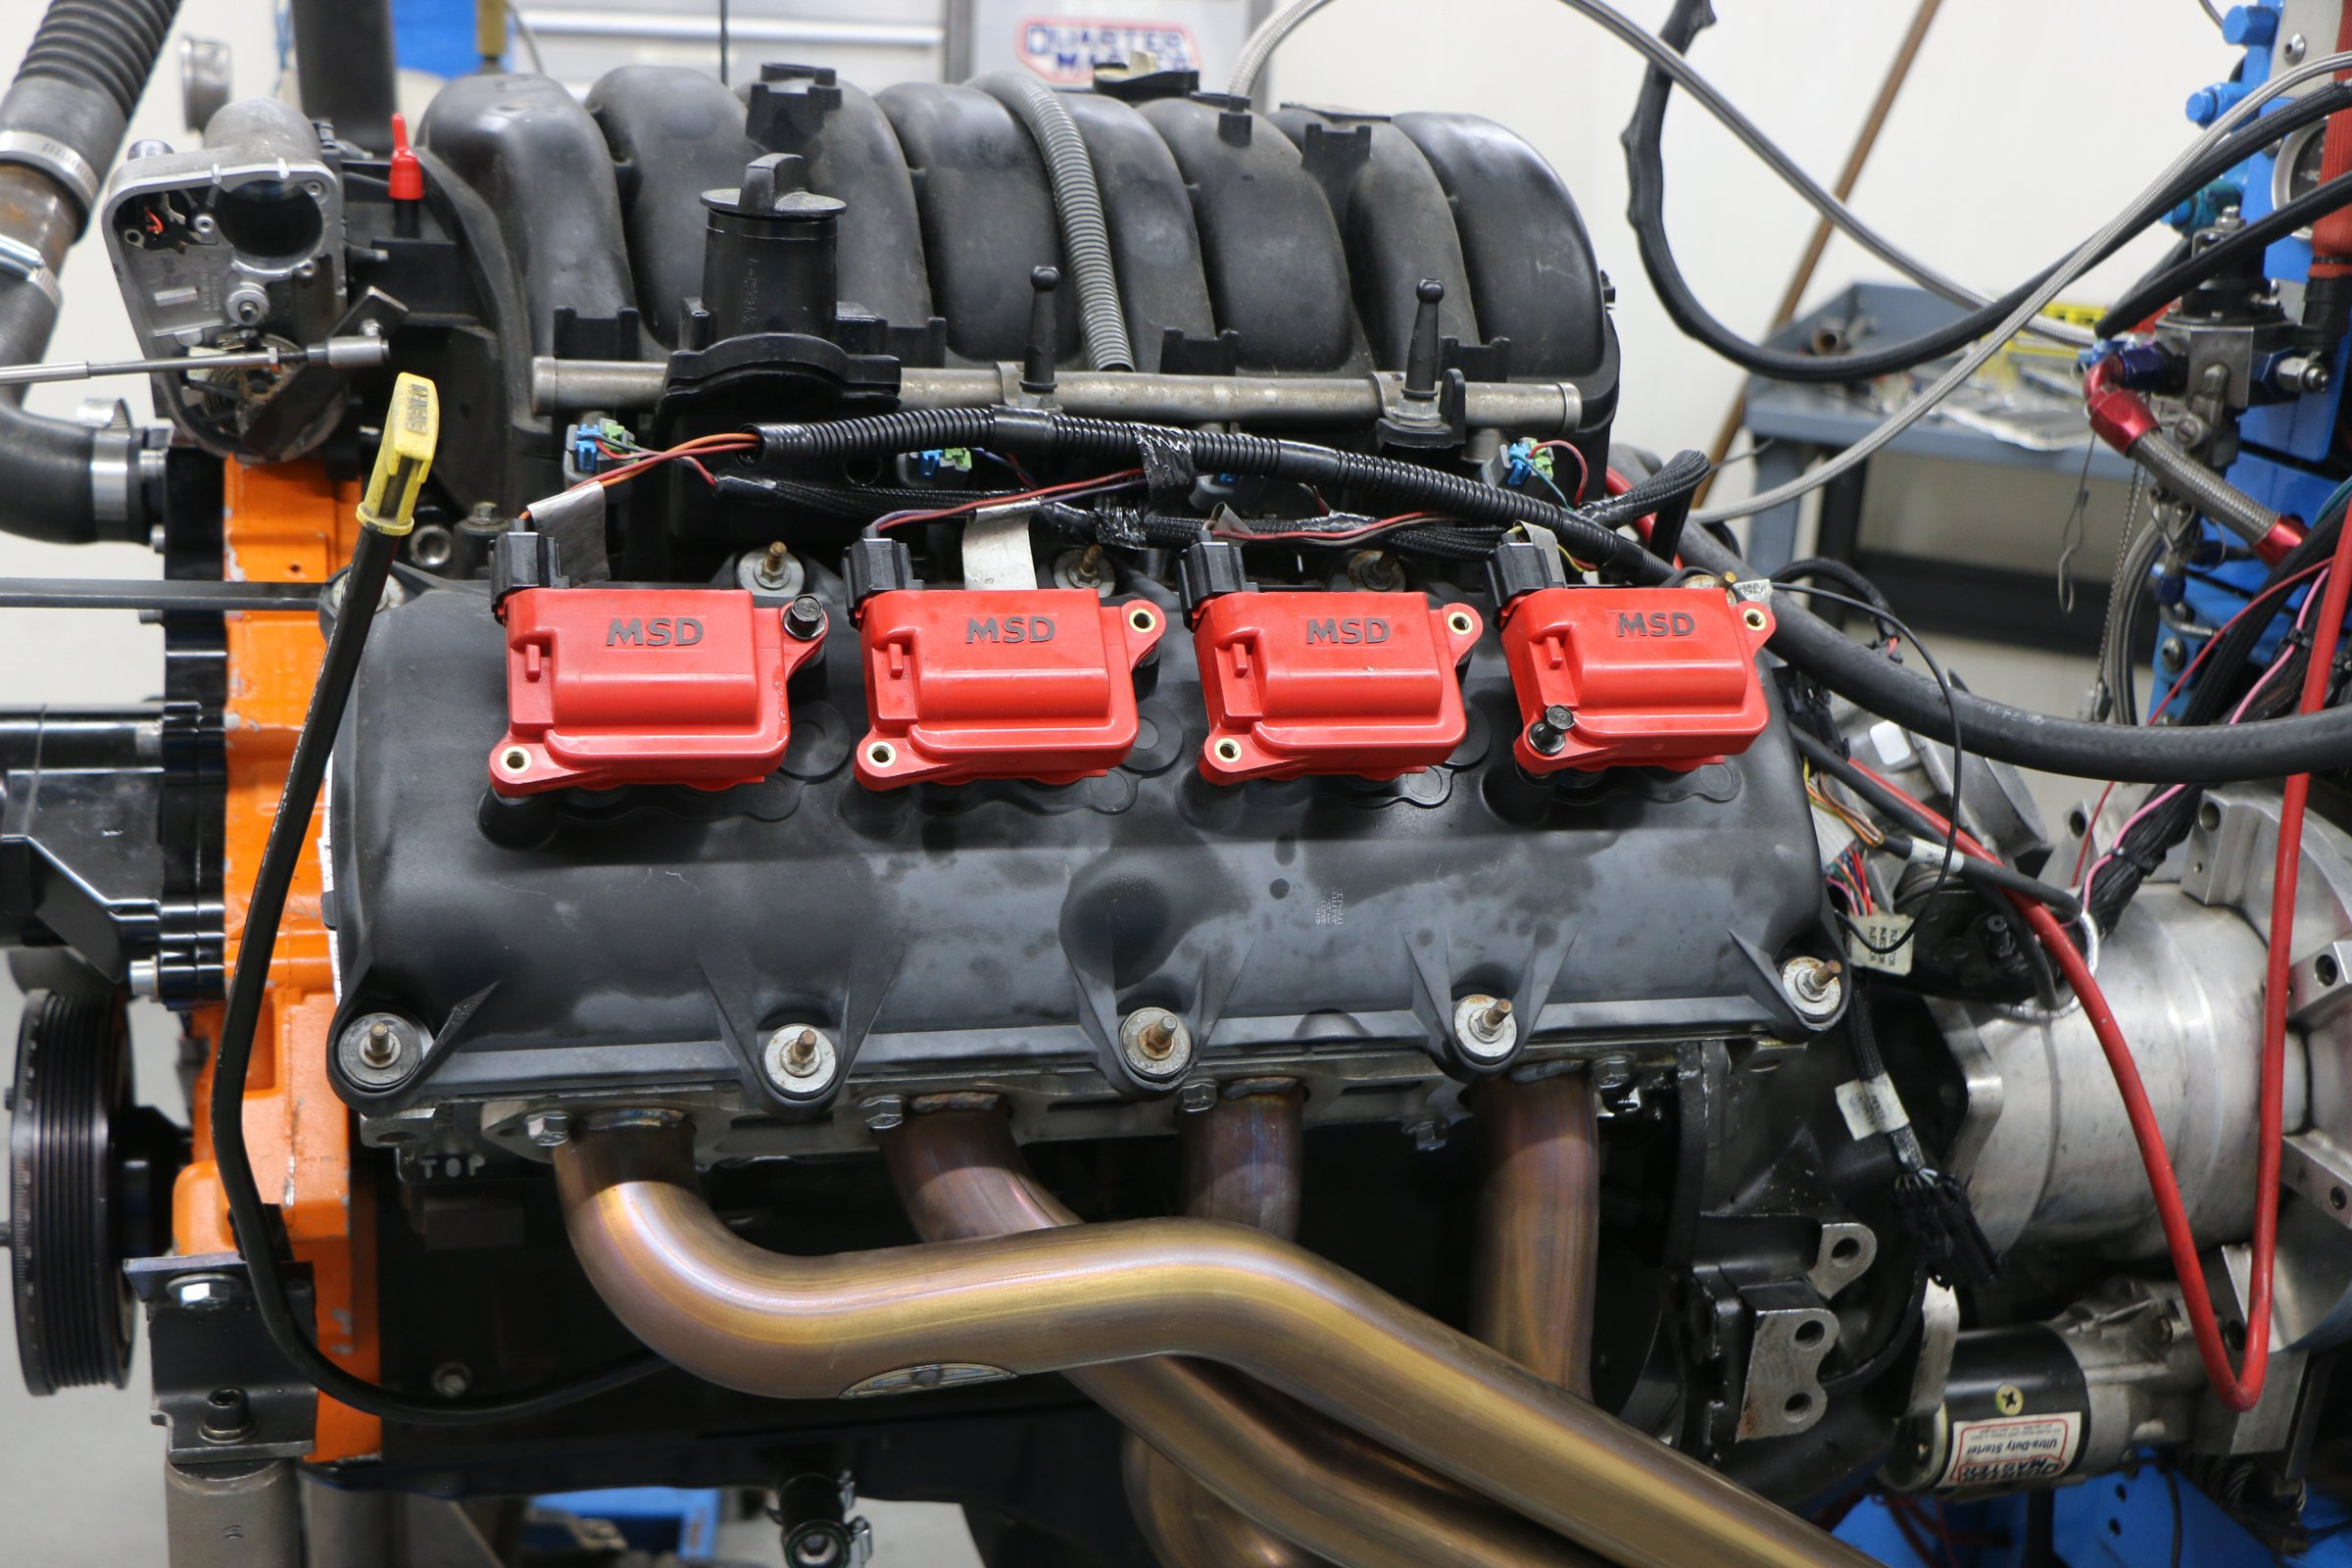 Chrysler 5.7L Hemi Valve Covers with MSD coil packs